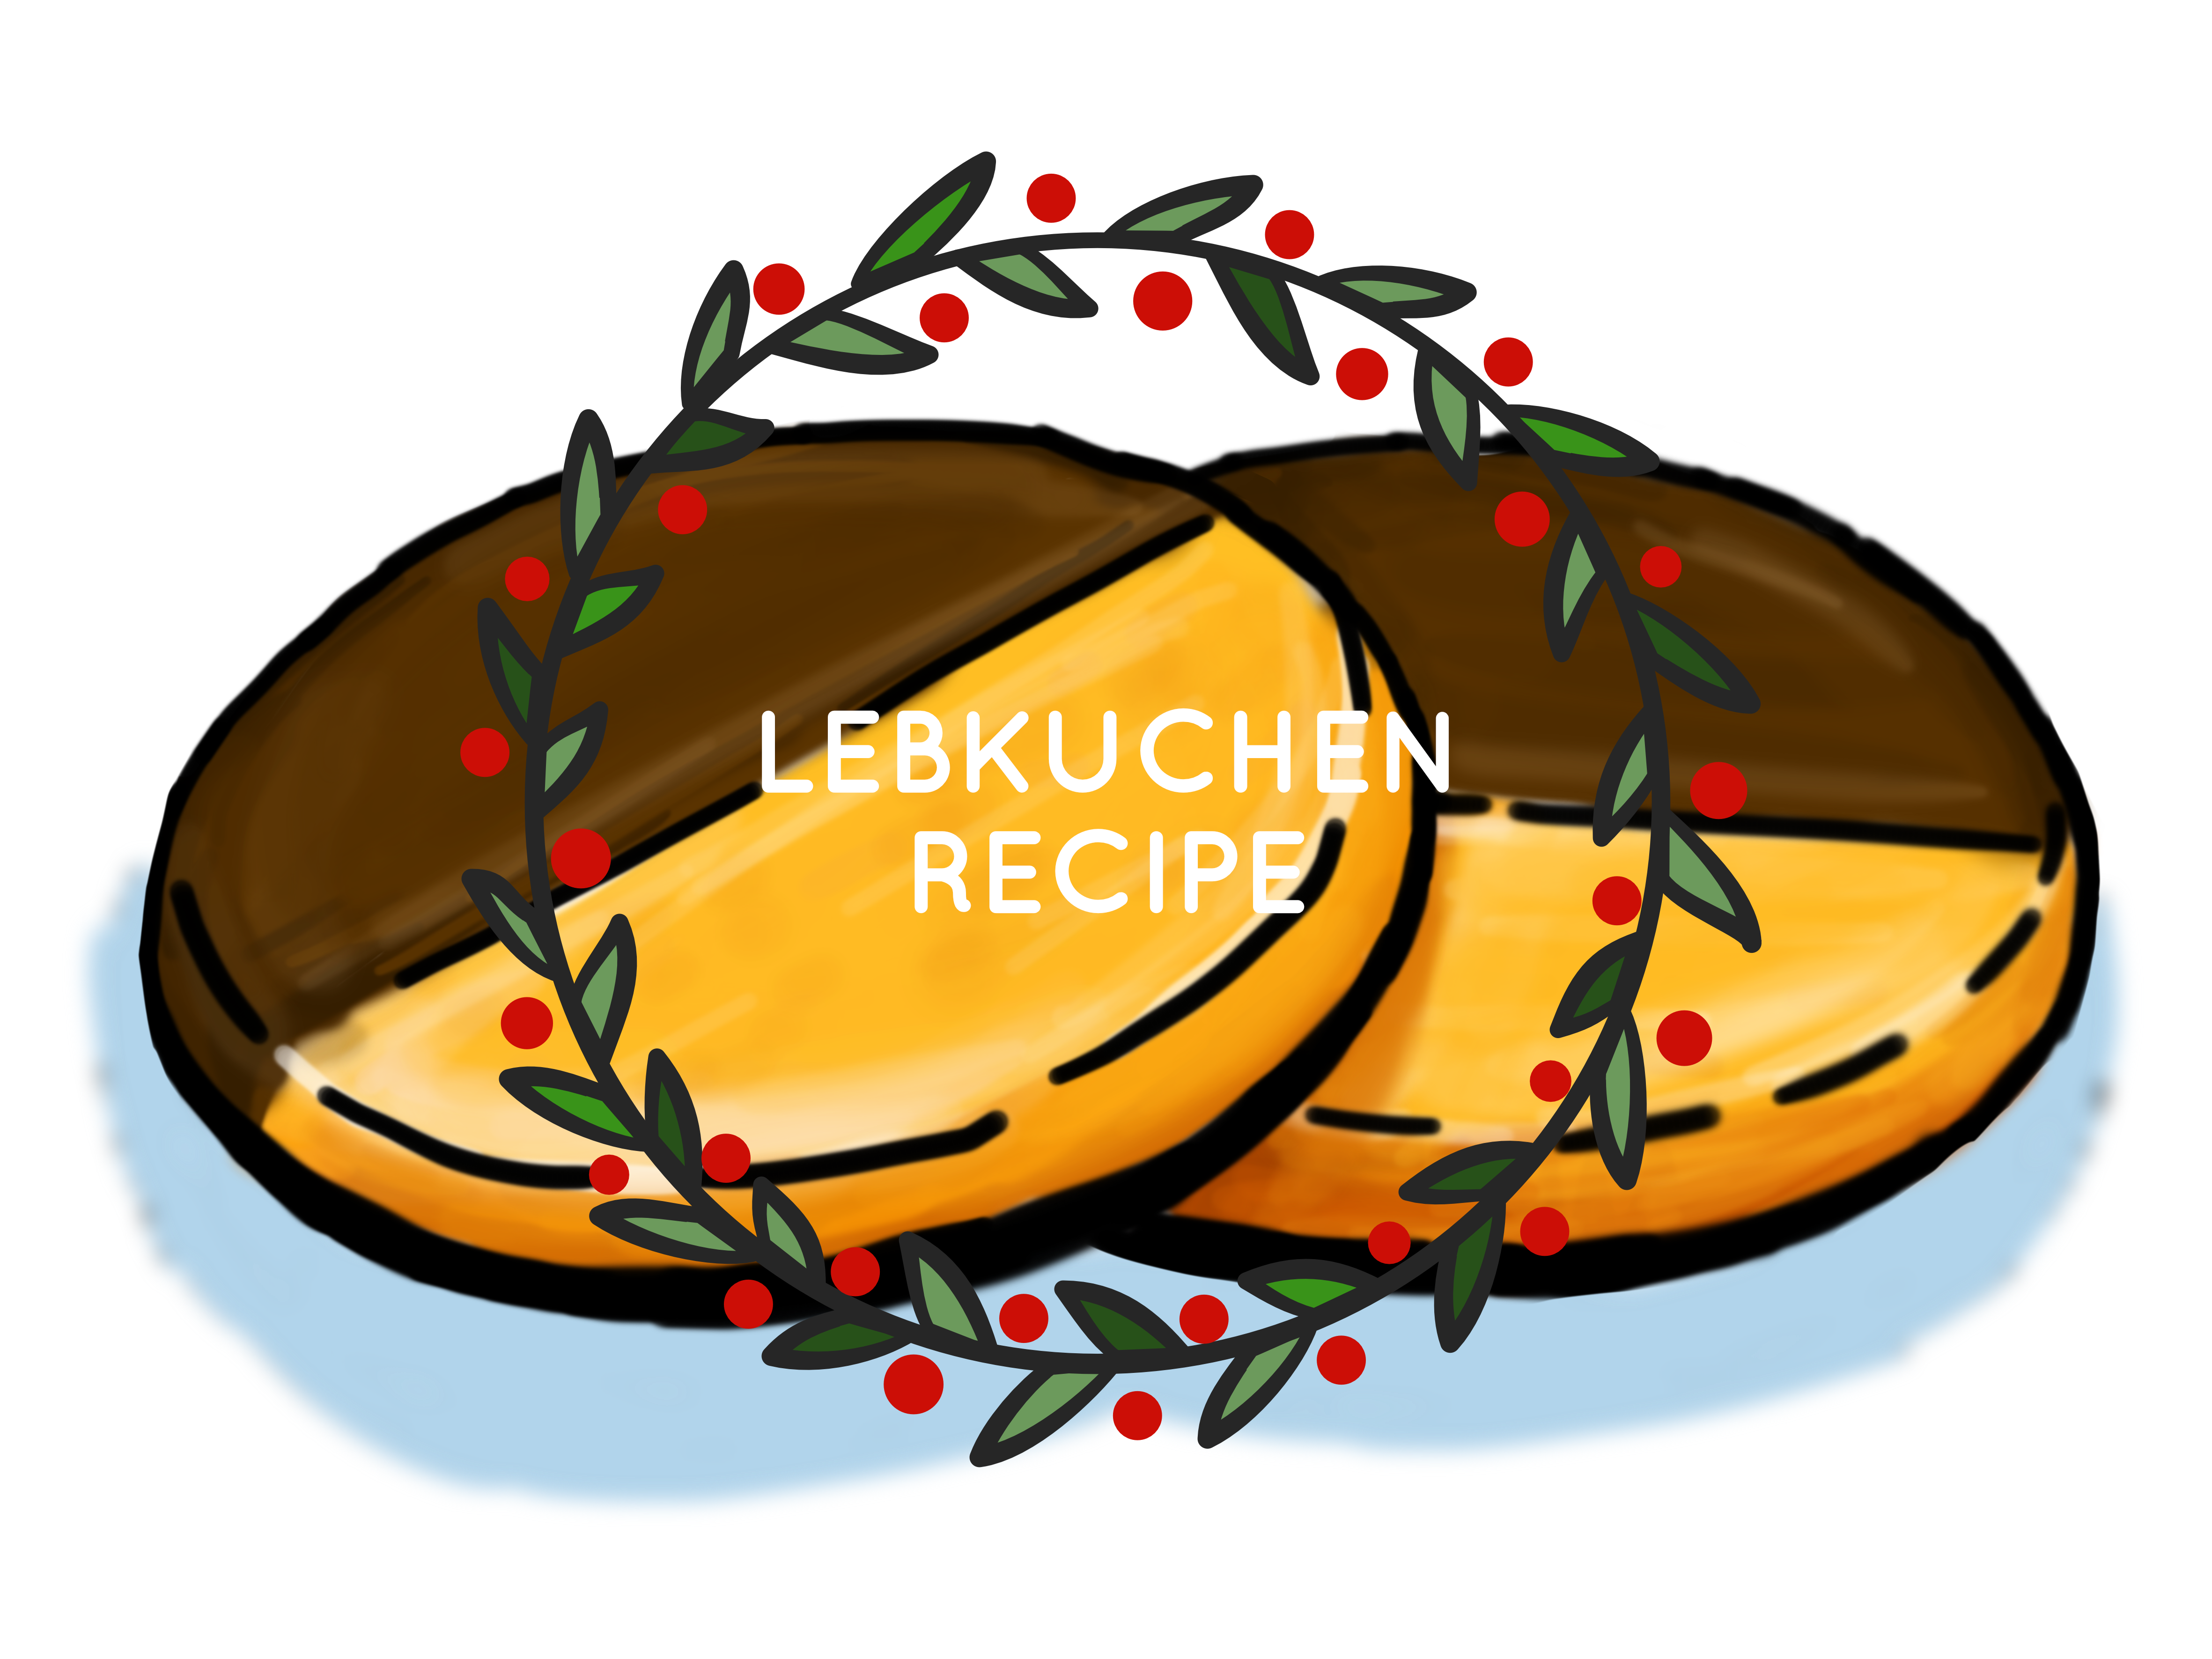 Lebkuchen recipe illustration